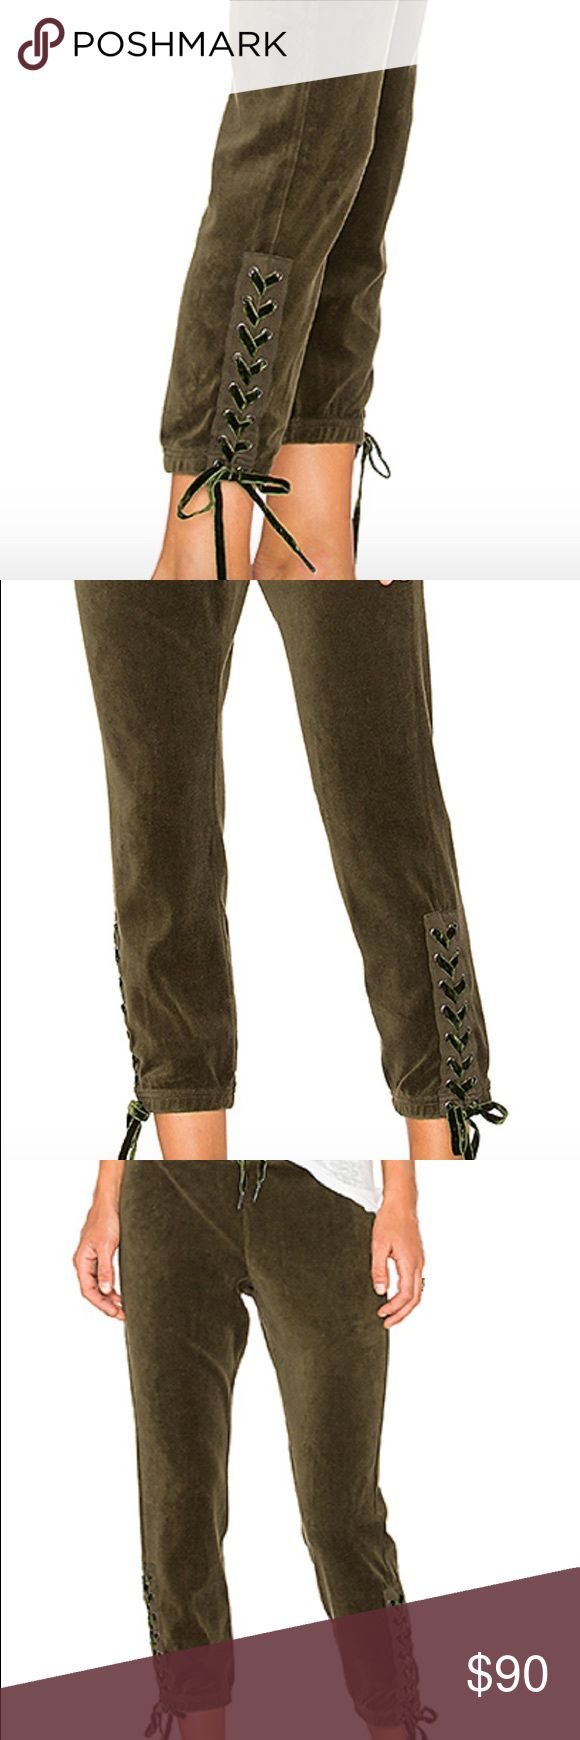 PAM & GELA Olive Green Velour Lace Up Sweat Pant S Brand new PAM & GELA olive velour stretchy waist drawstring waist pant with lace up Capri length sides. Super cute and can be worn casually or even dressed up! PAM & GELA Pants Track Pants & Joggers